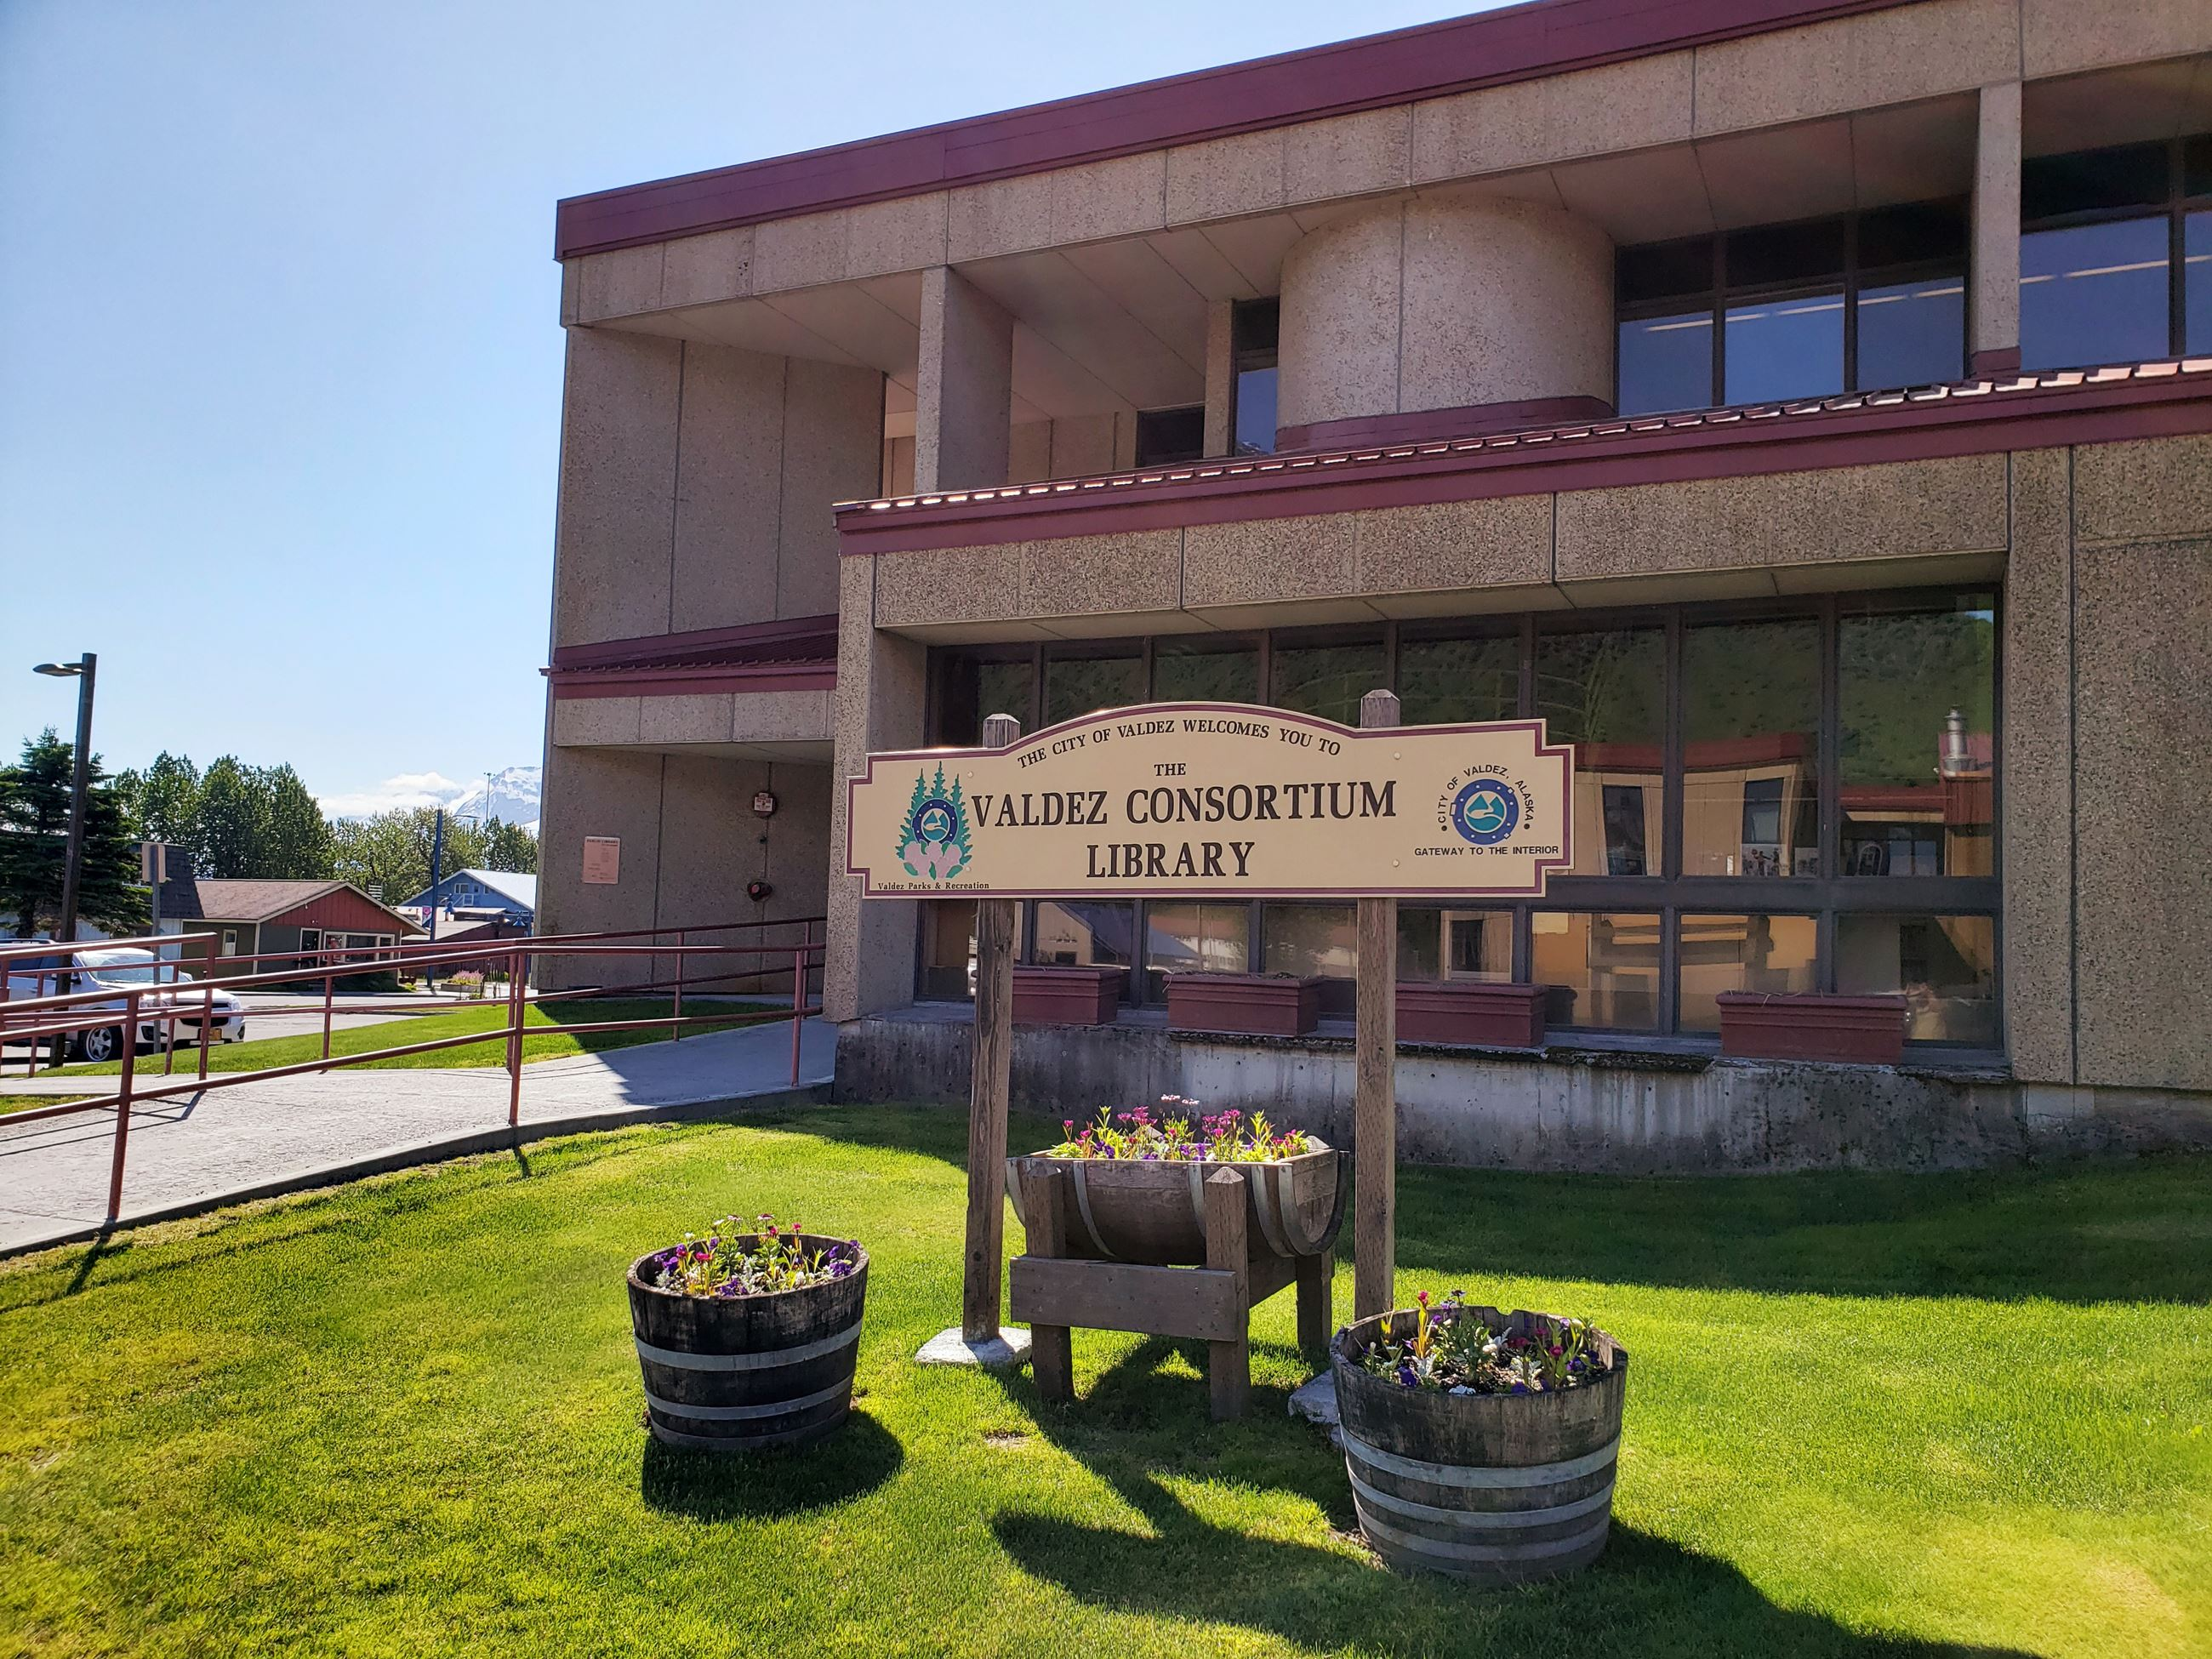 Picture of the Valdez Consortium Library on a sunny day.